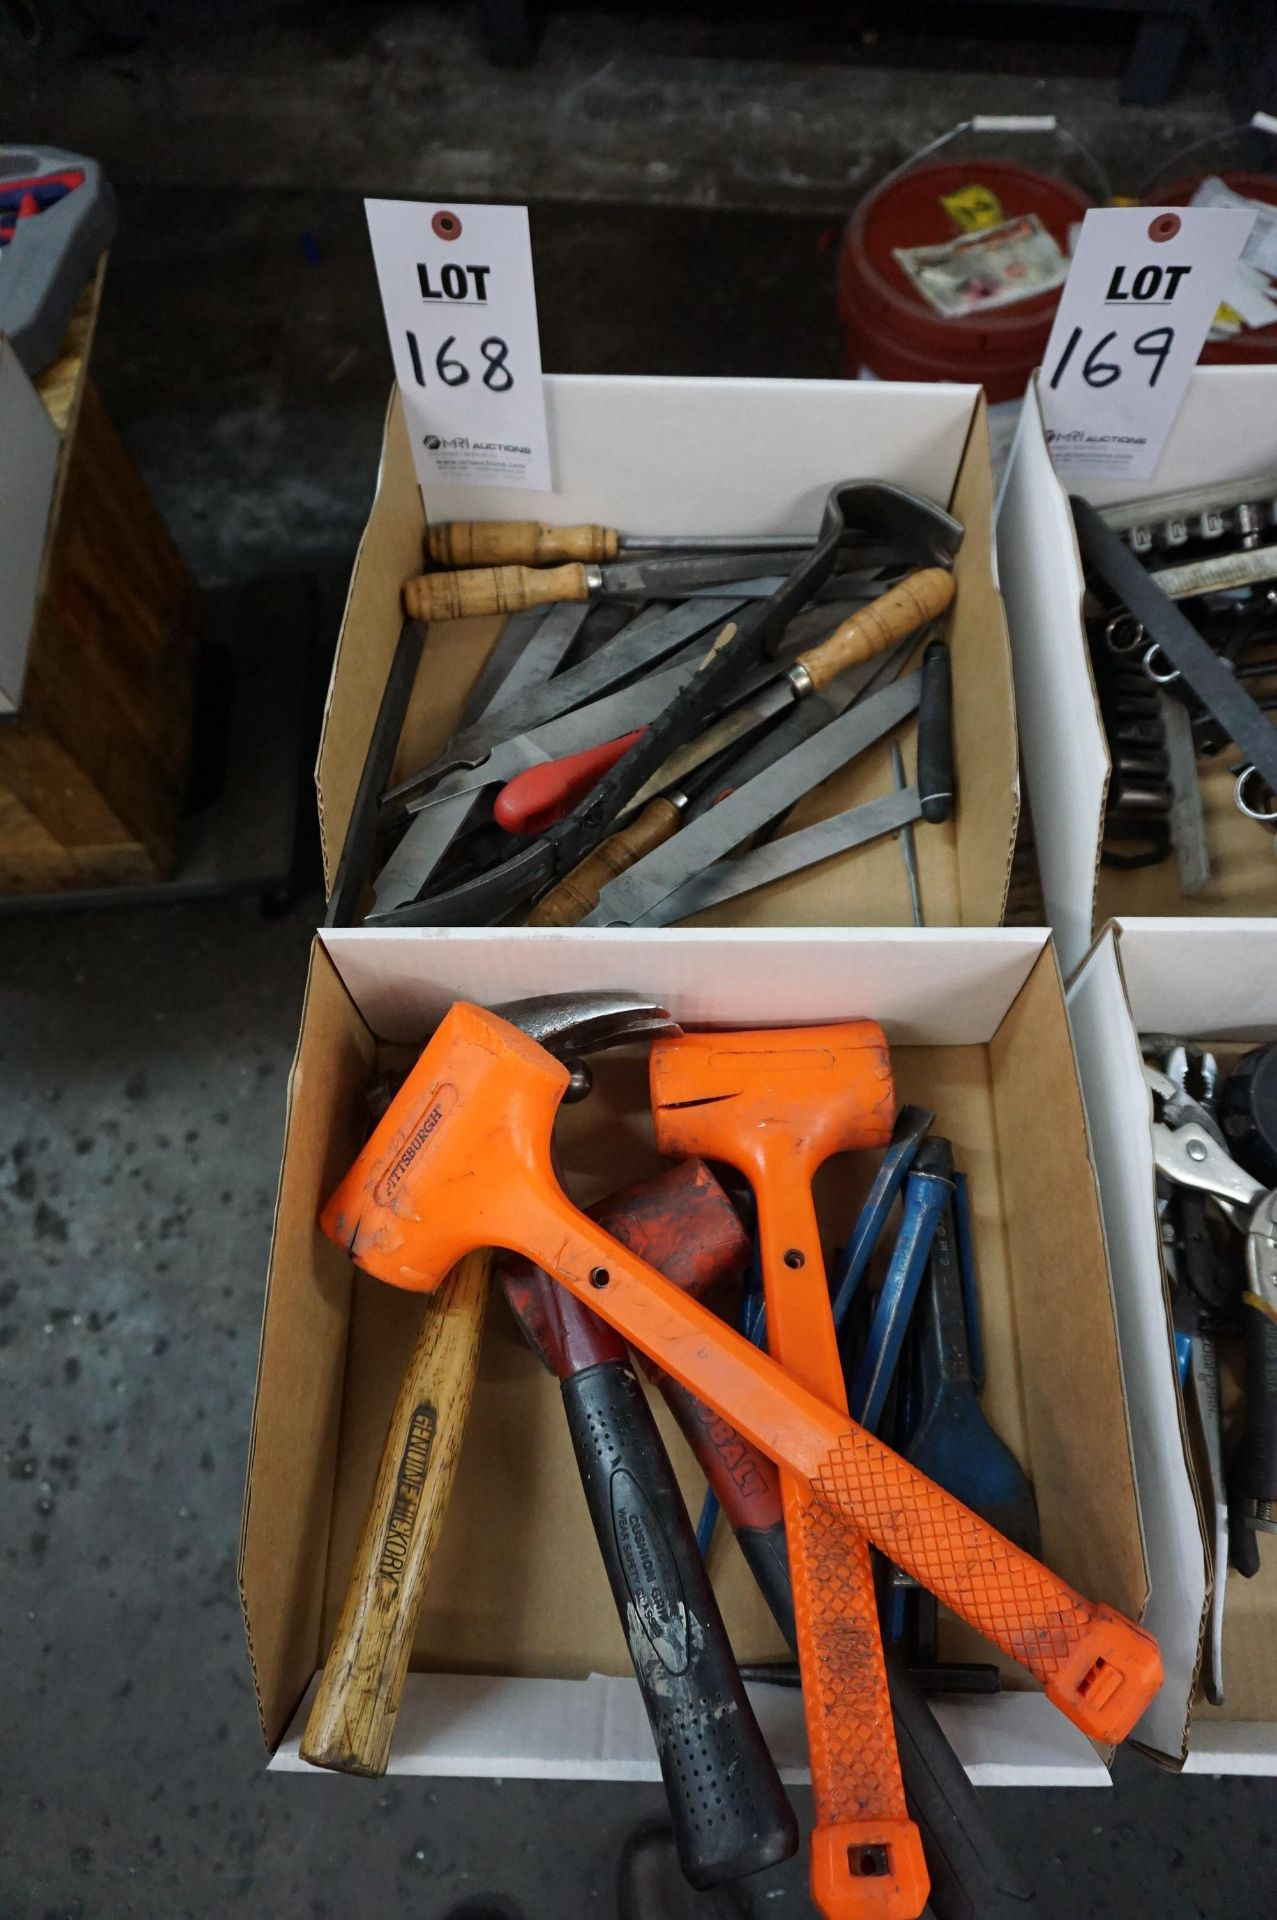 (2 BOXES) LOT TO INCLUDE: MISC. FILES, HAMMERS, CHISELS, AND PRY BAR - Image 2 of 2